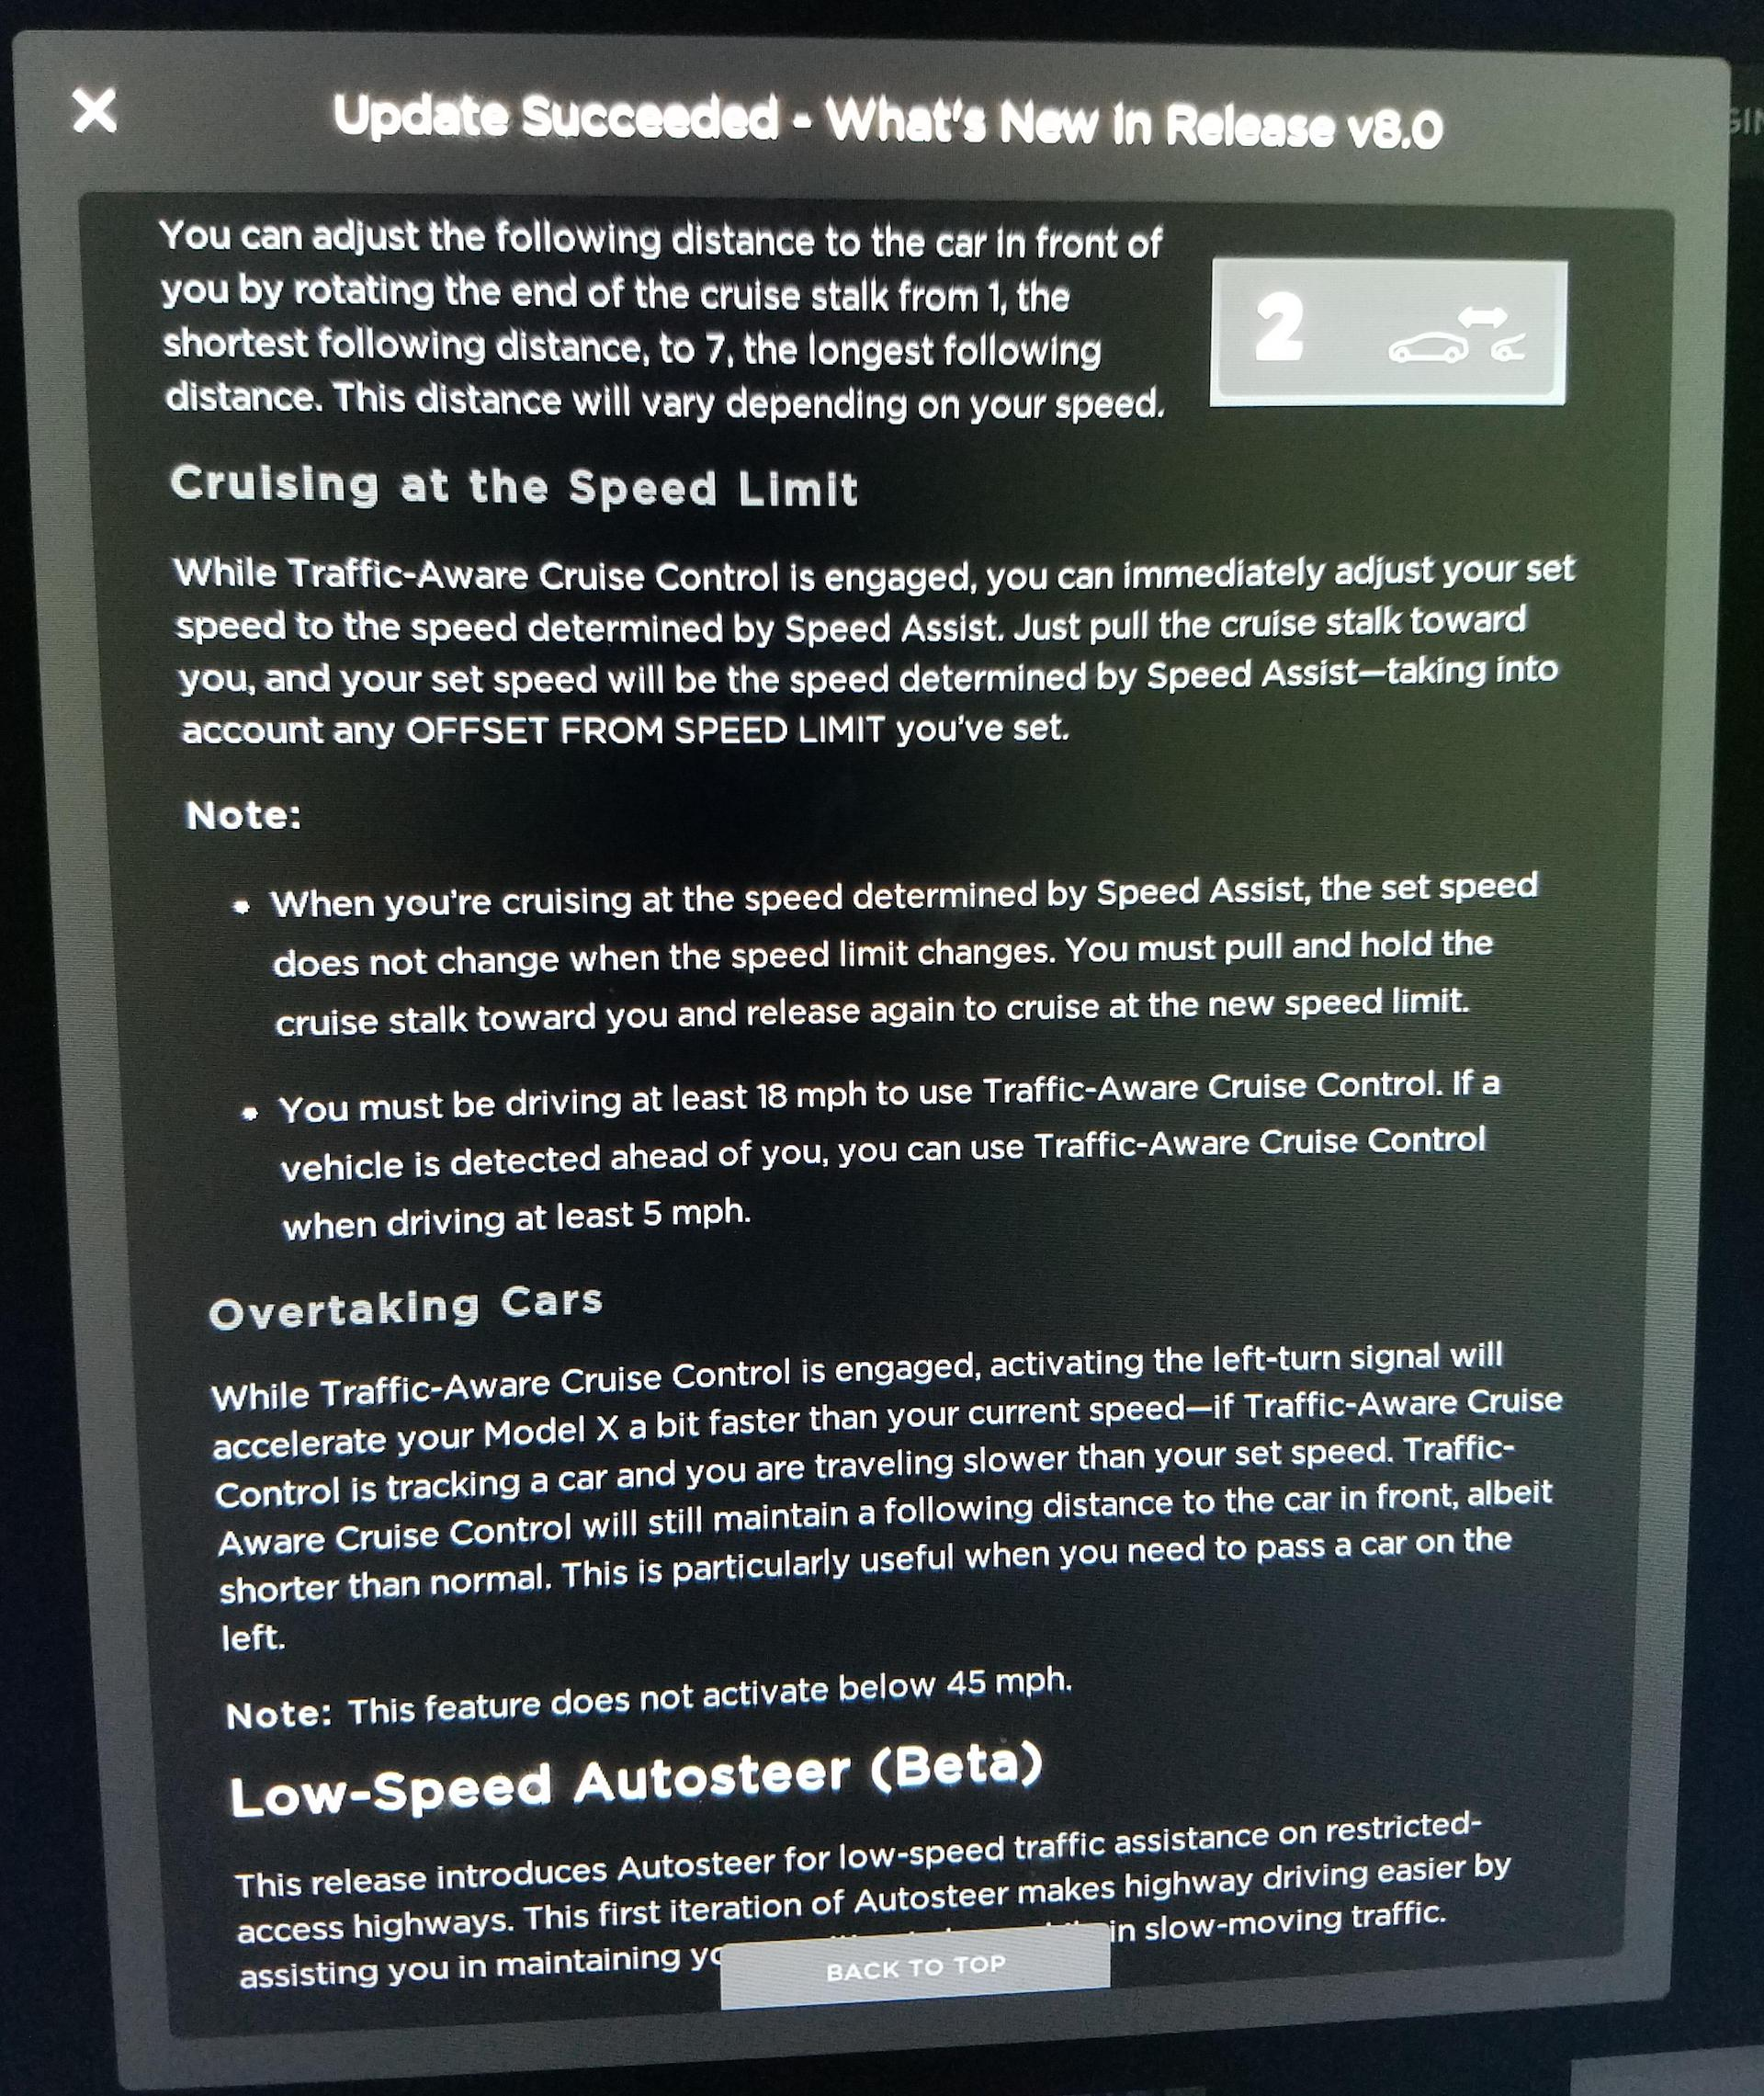 Tesla_Enhanced_Autopilot_release-notes-3